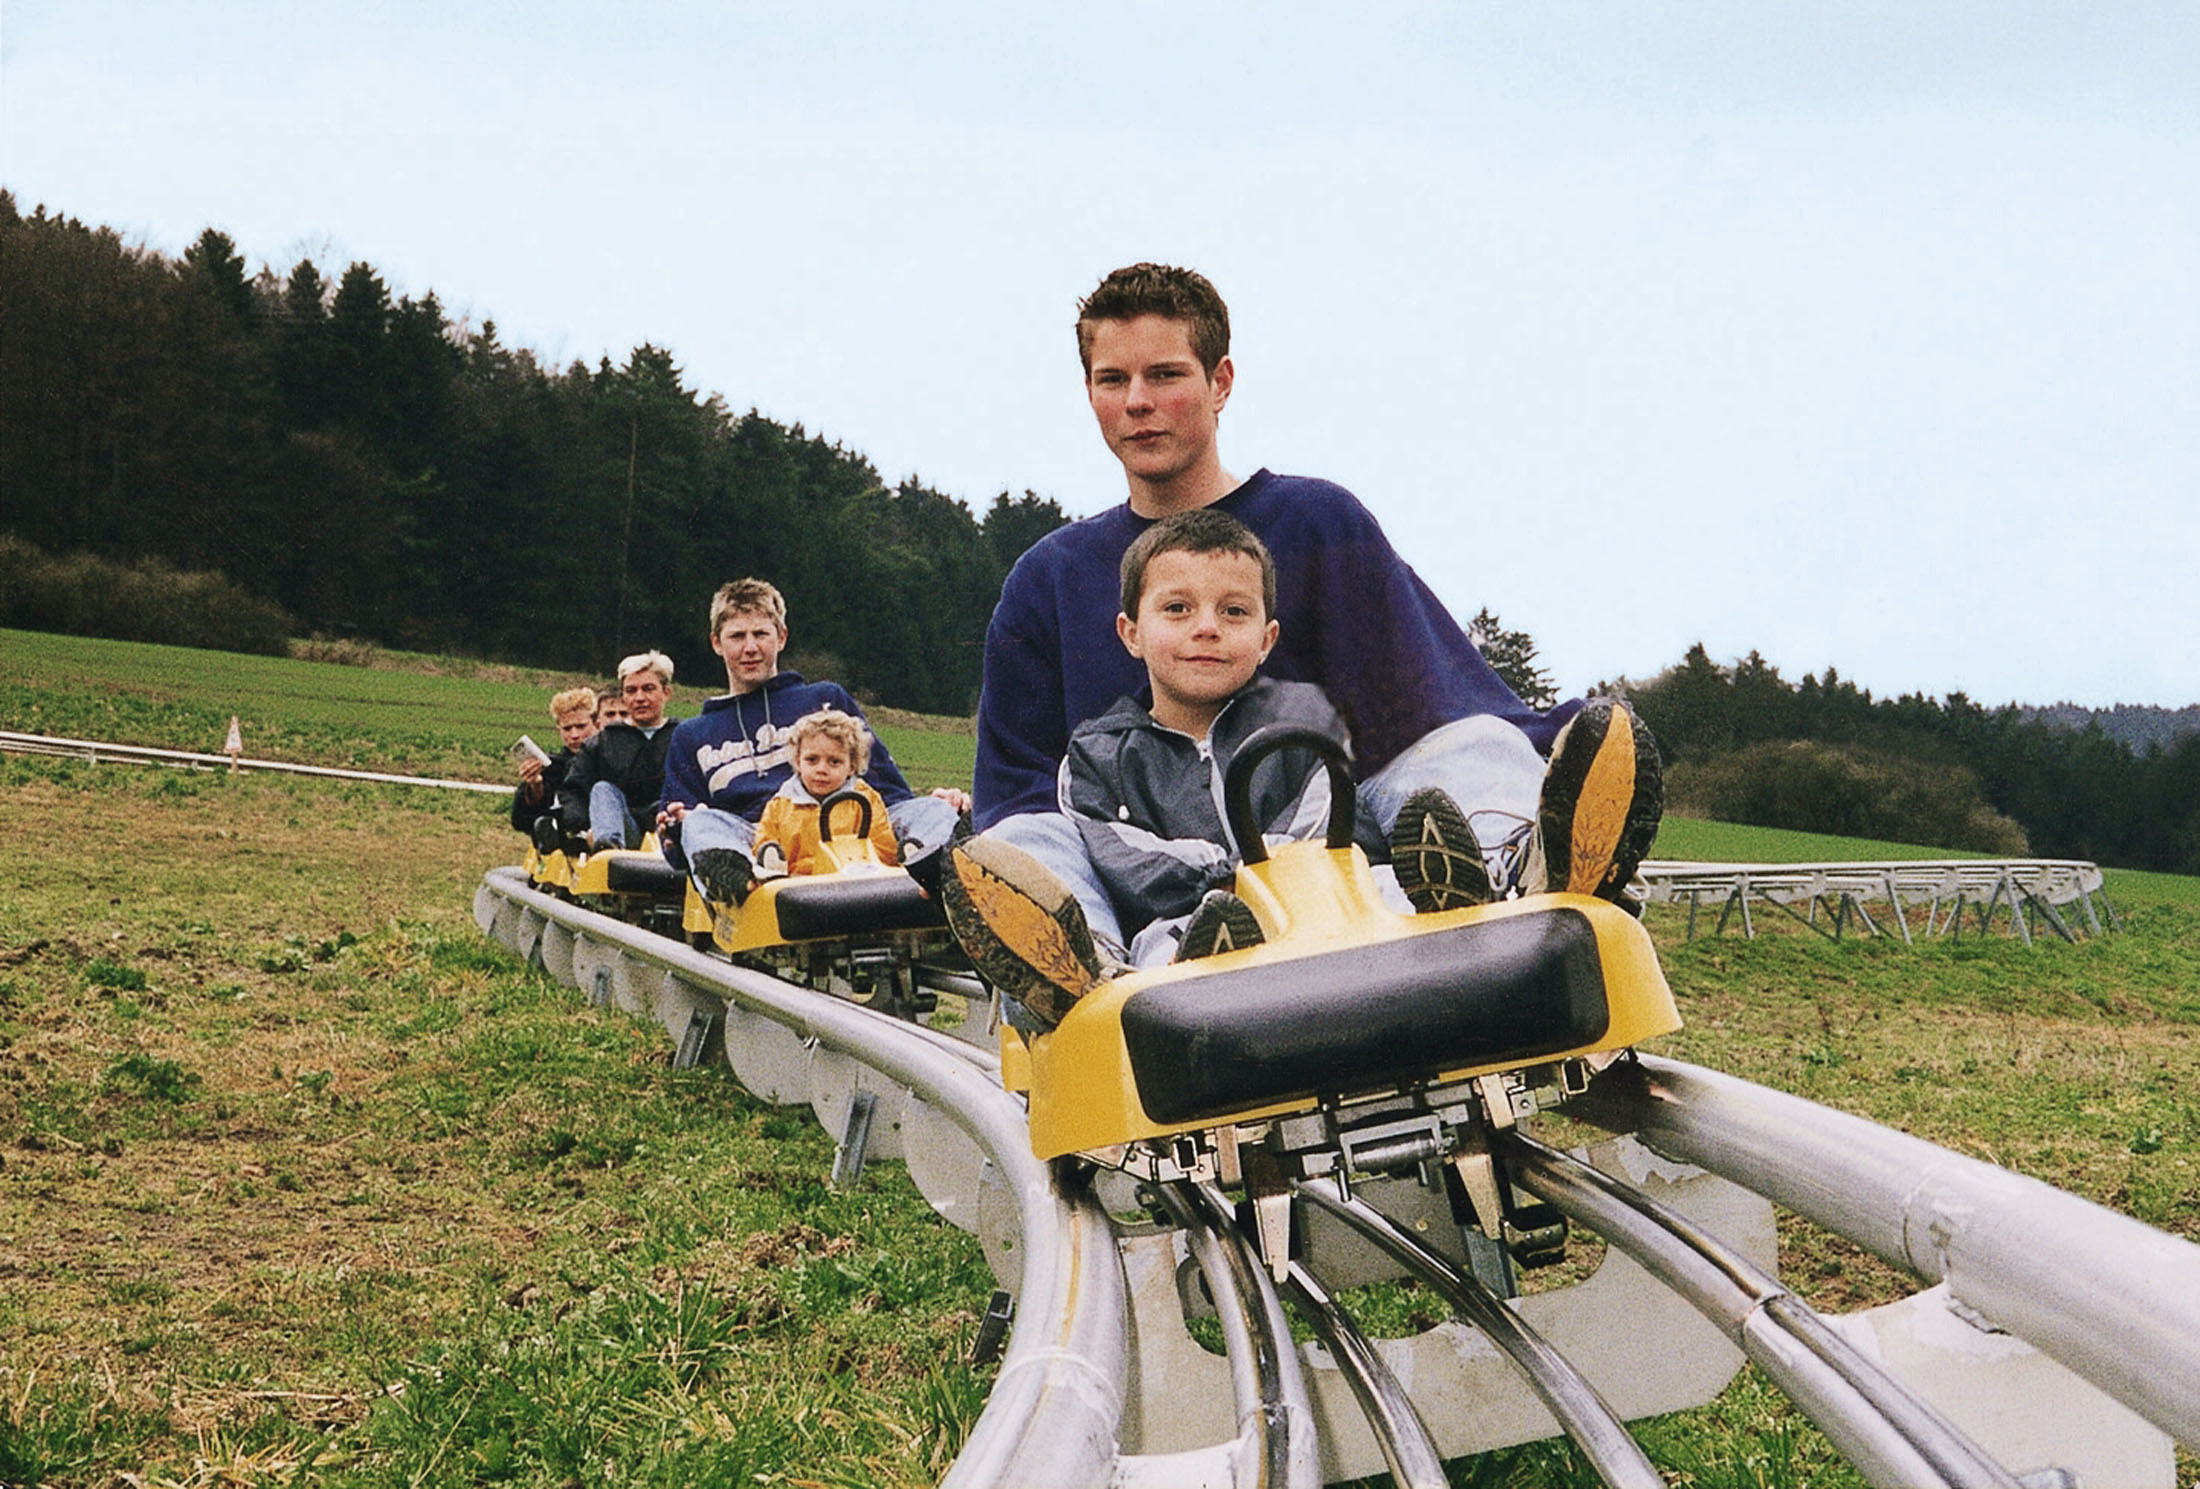 Ride on the bobsleigh and toboggan runs which can be over 1000 m long - Sommerrodelbahn in Riedenburg